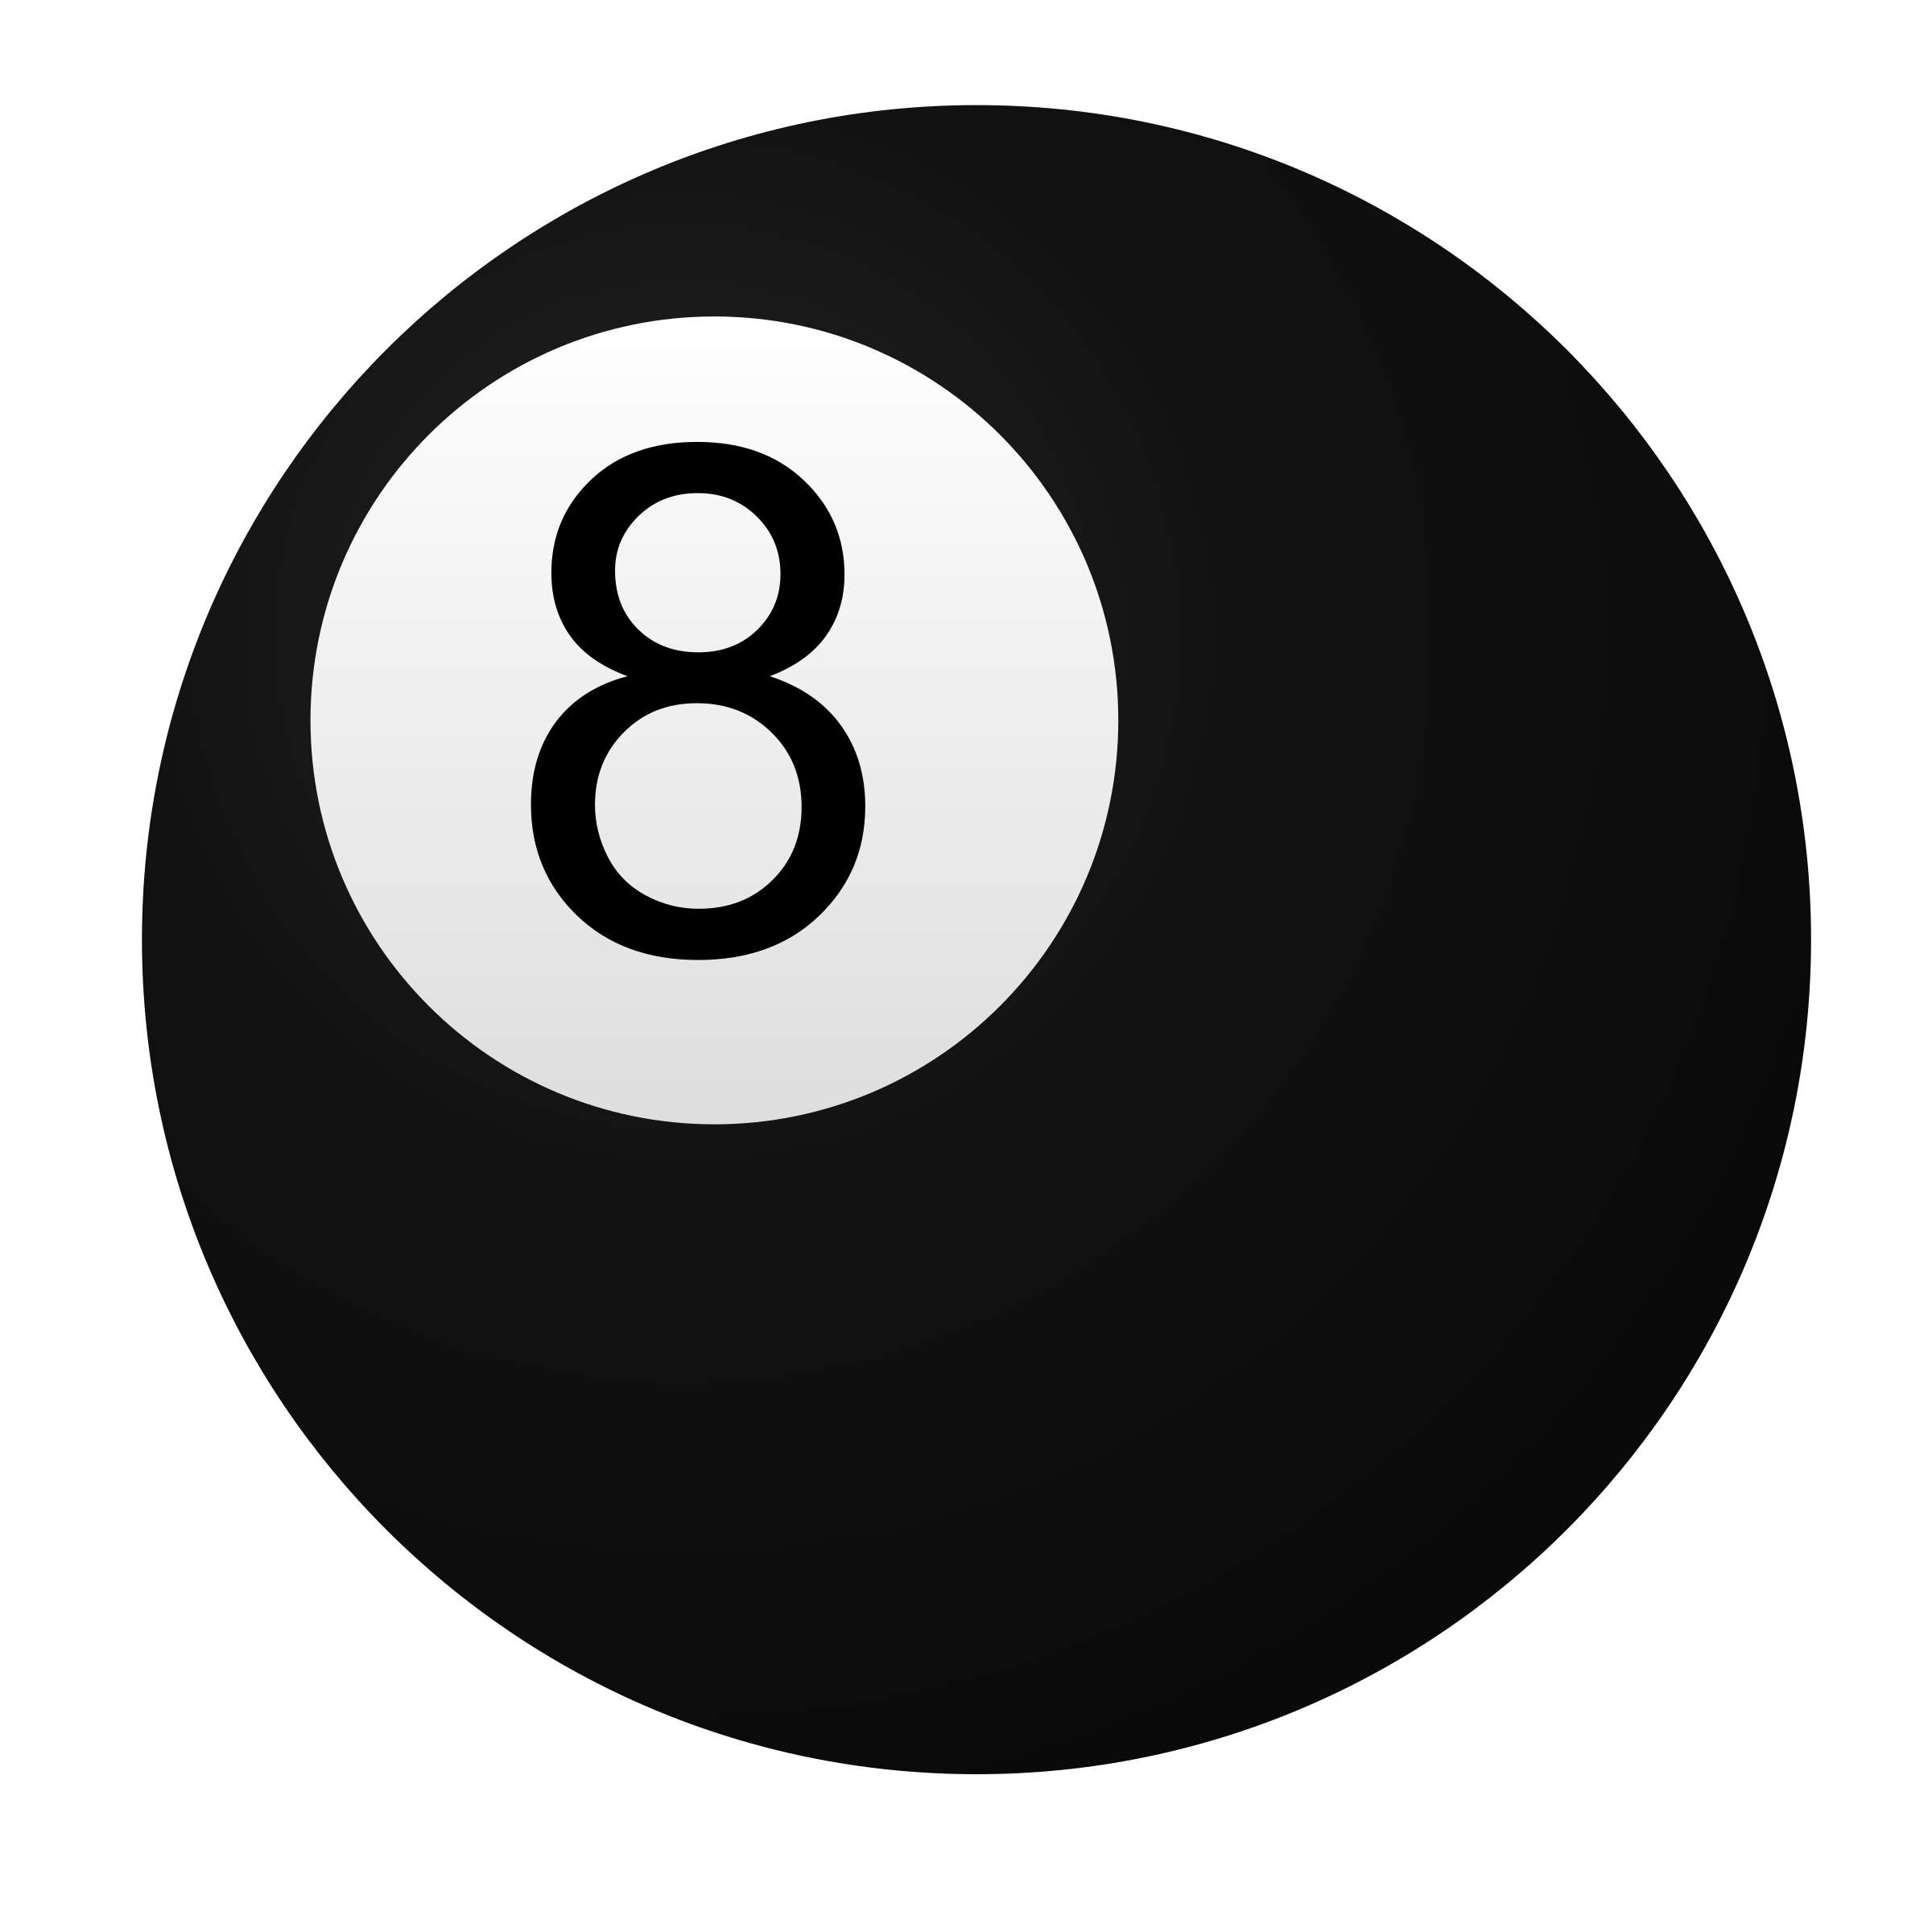 8 ball png. Icons free and